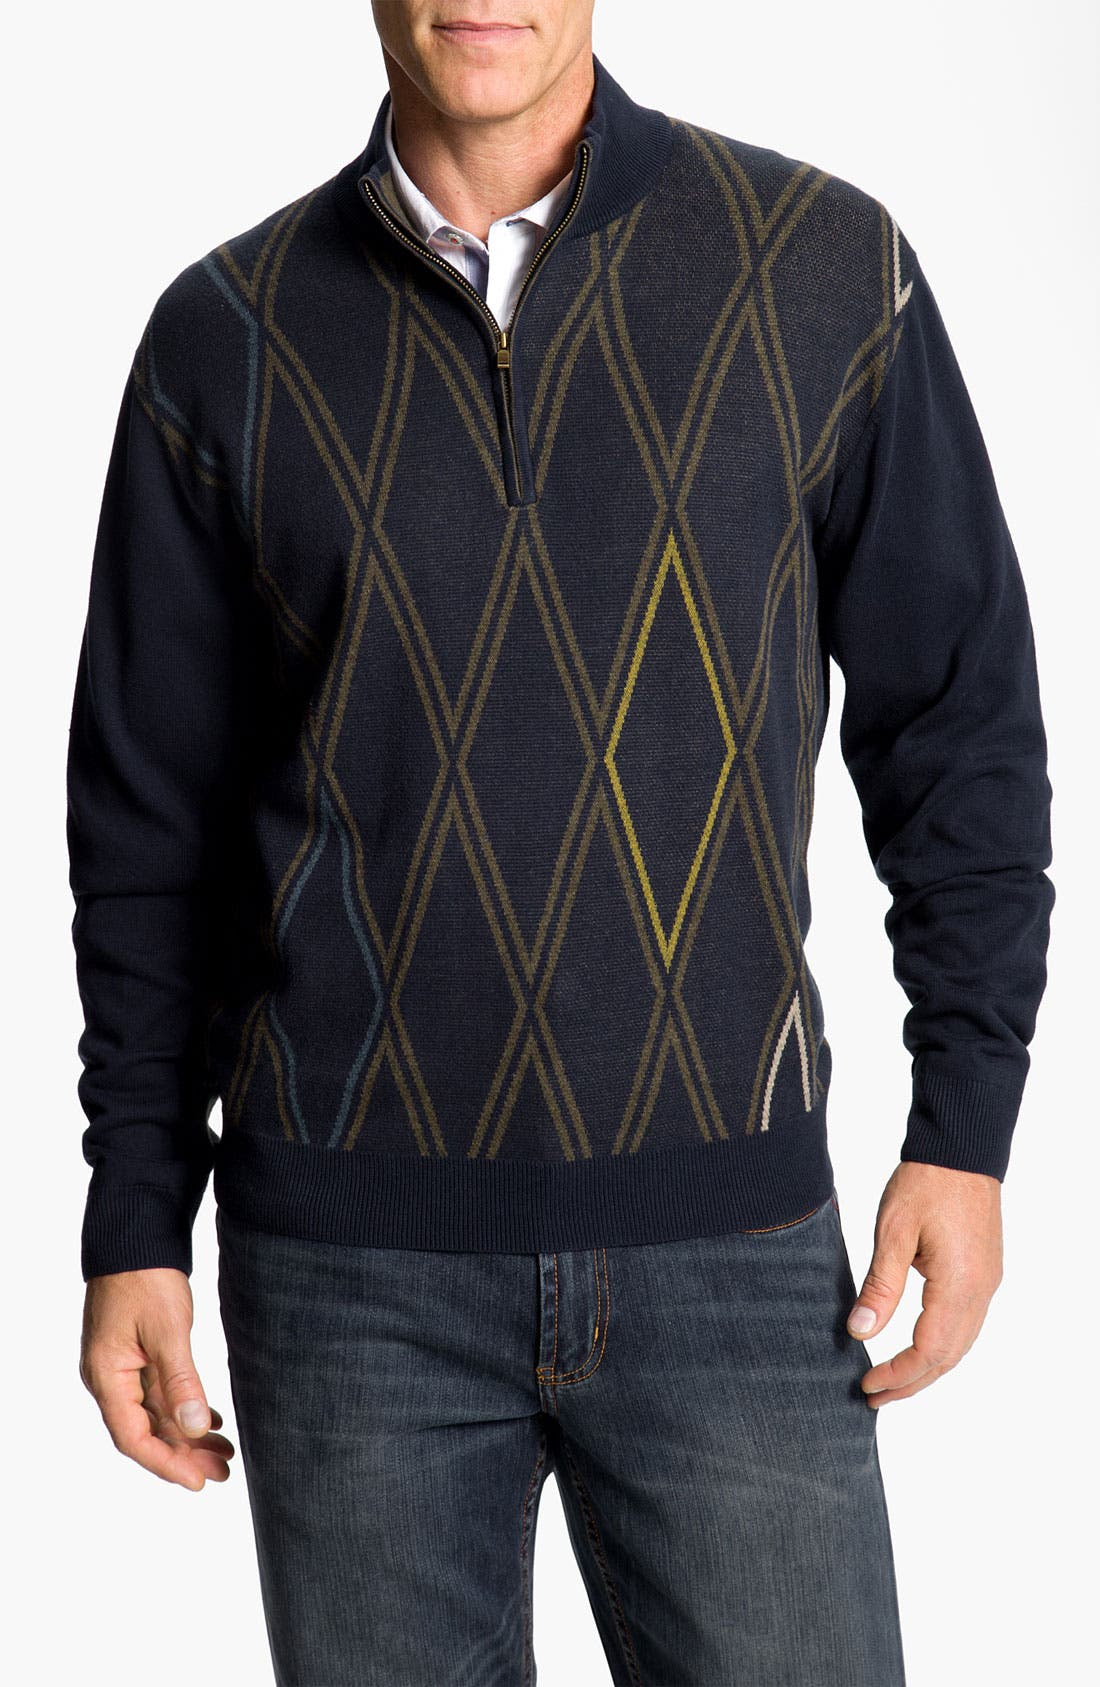 Main Image - Cutter & Buck 'Gorge' Half Zip Sweater (Big & Tall) (Online Exclusive)